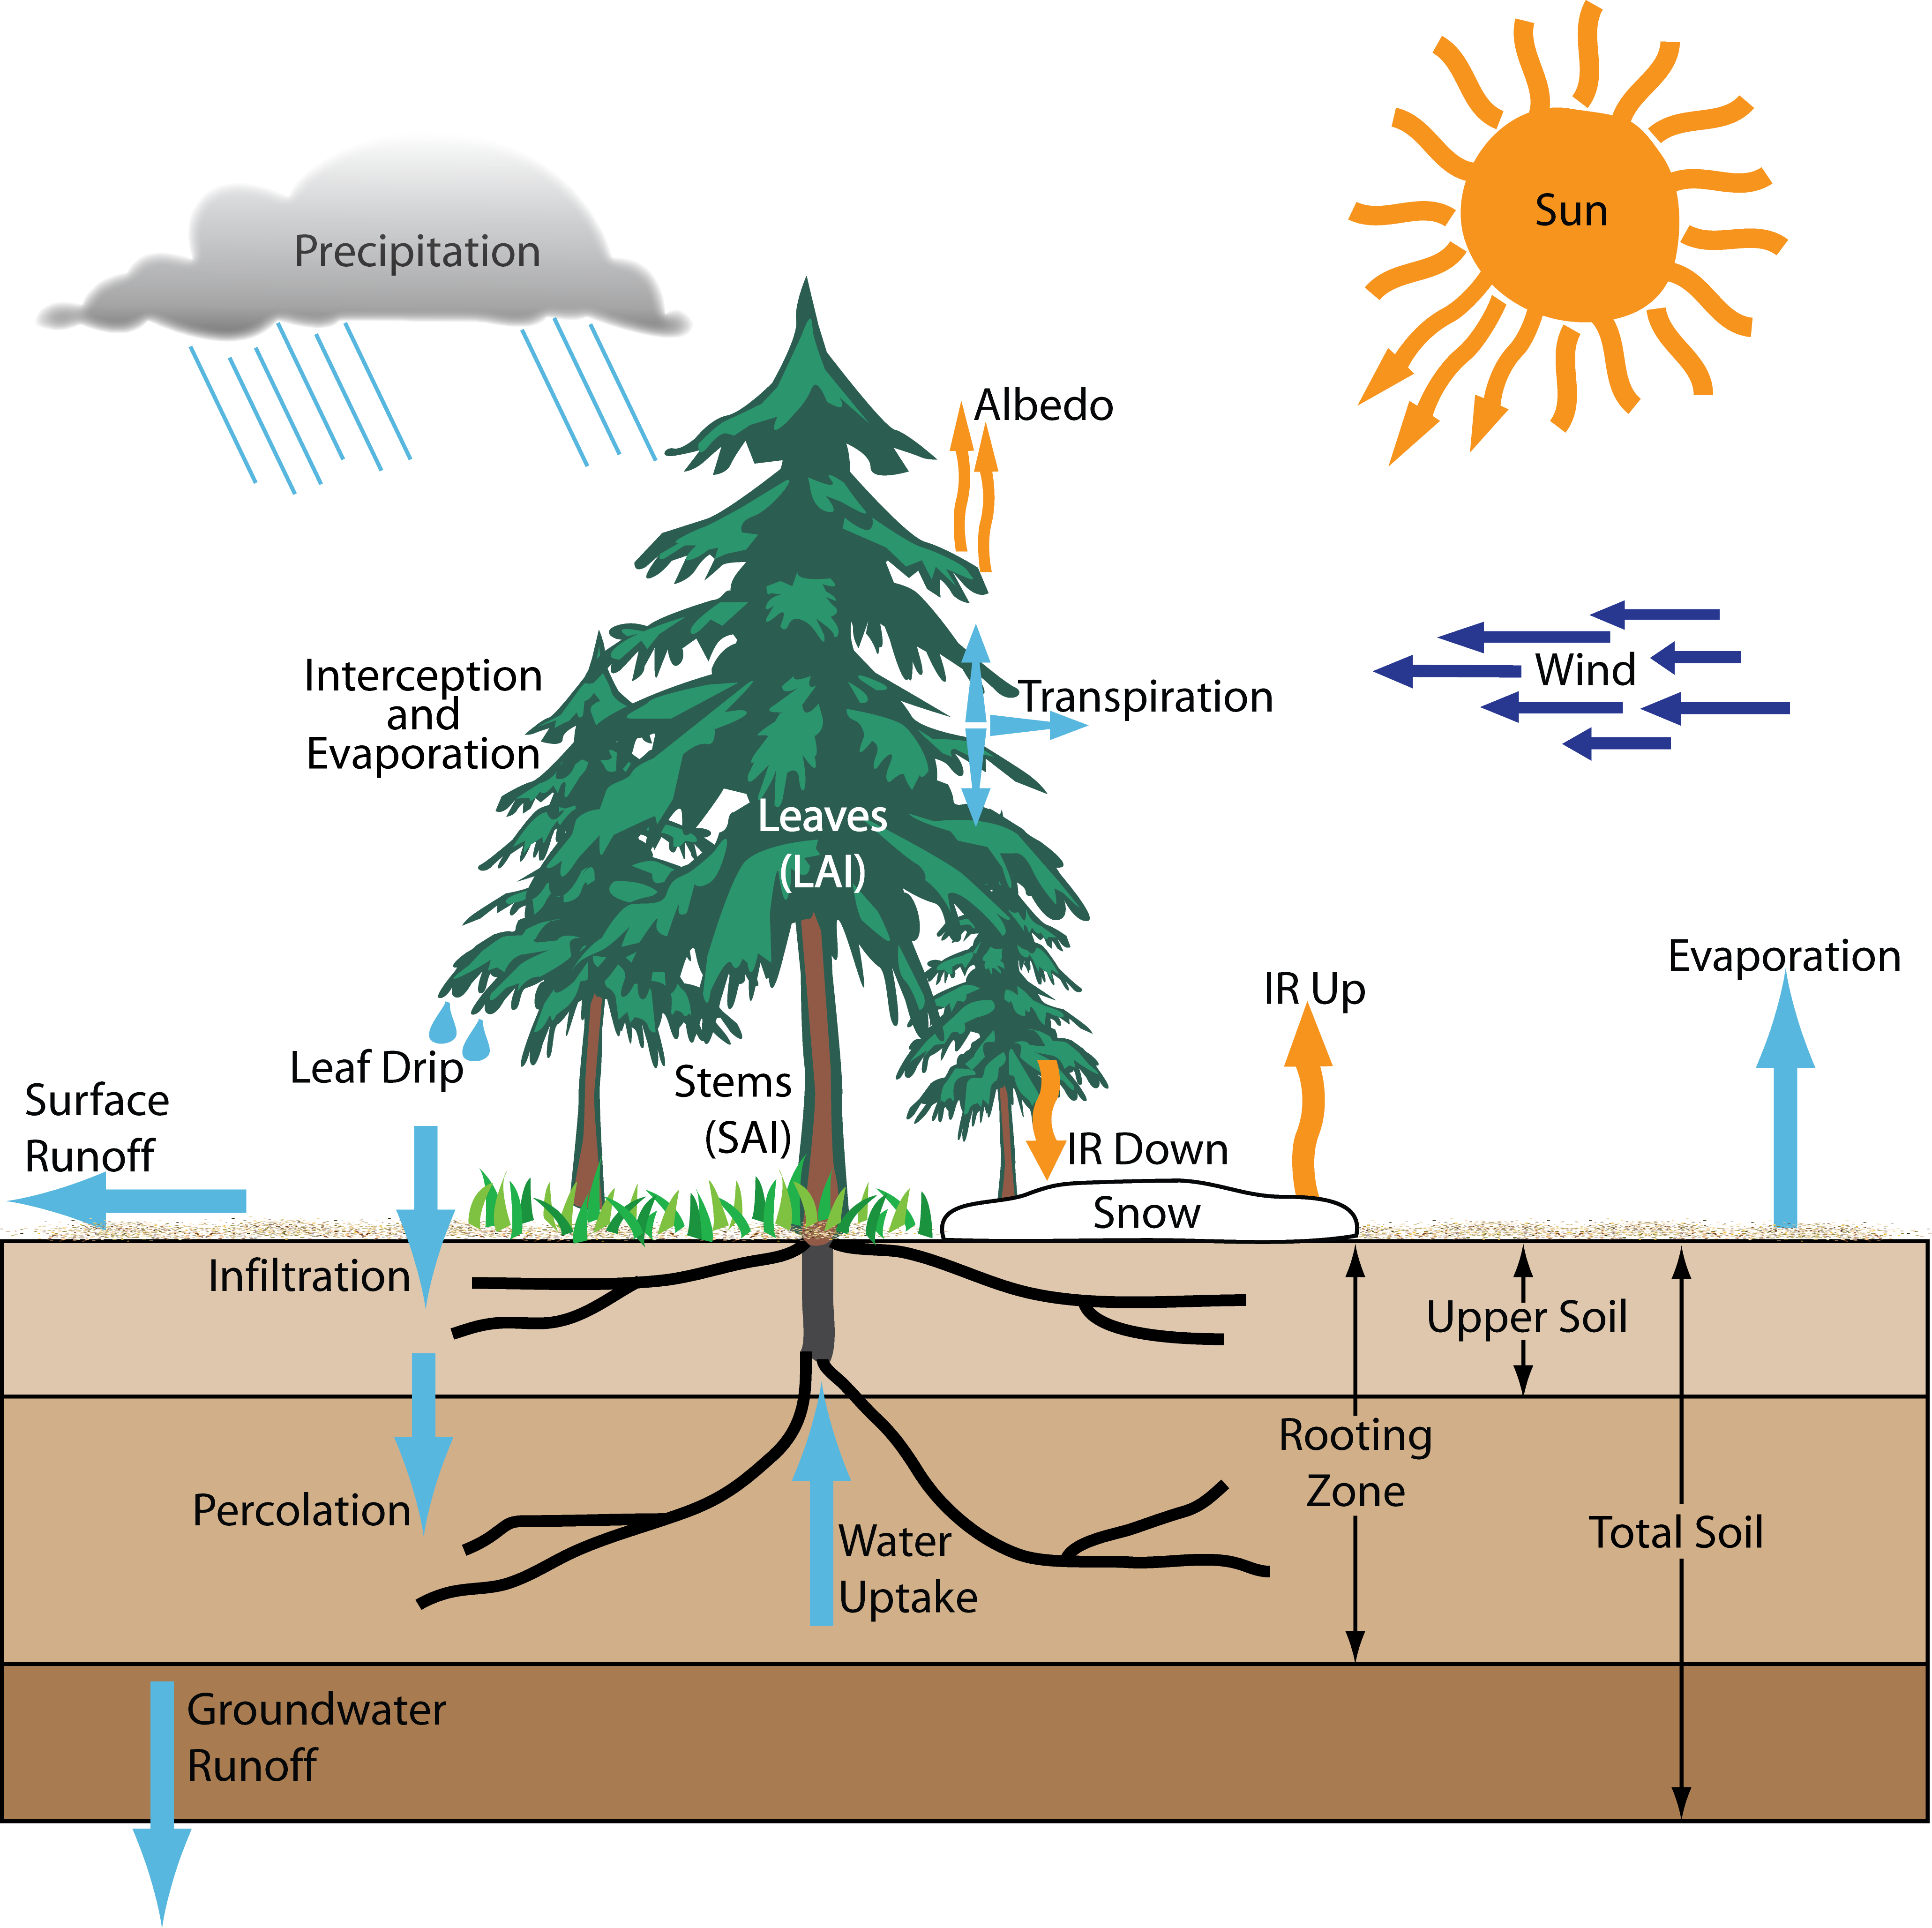 Evaporation drawing plant. Tree transpiration diagram search